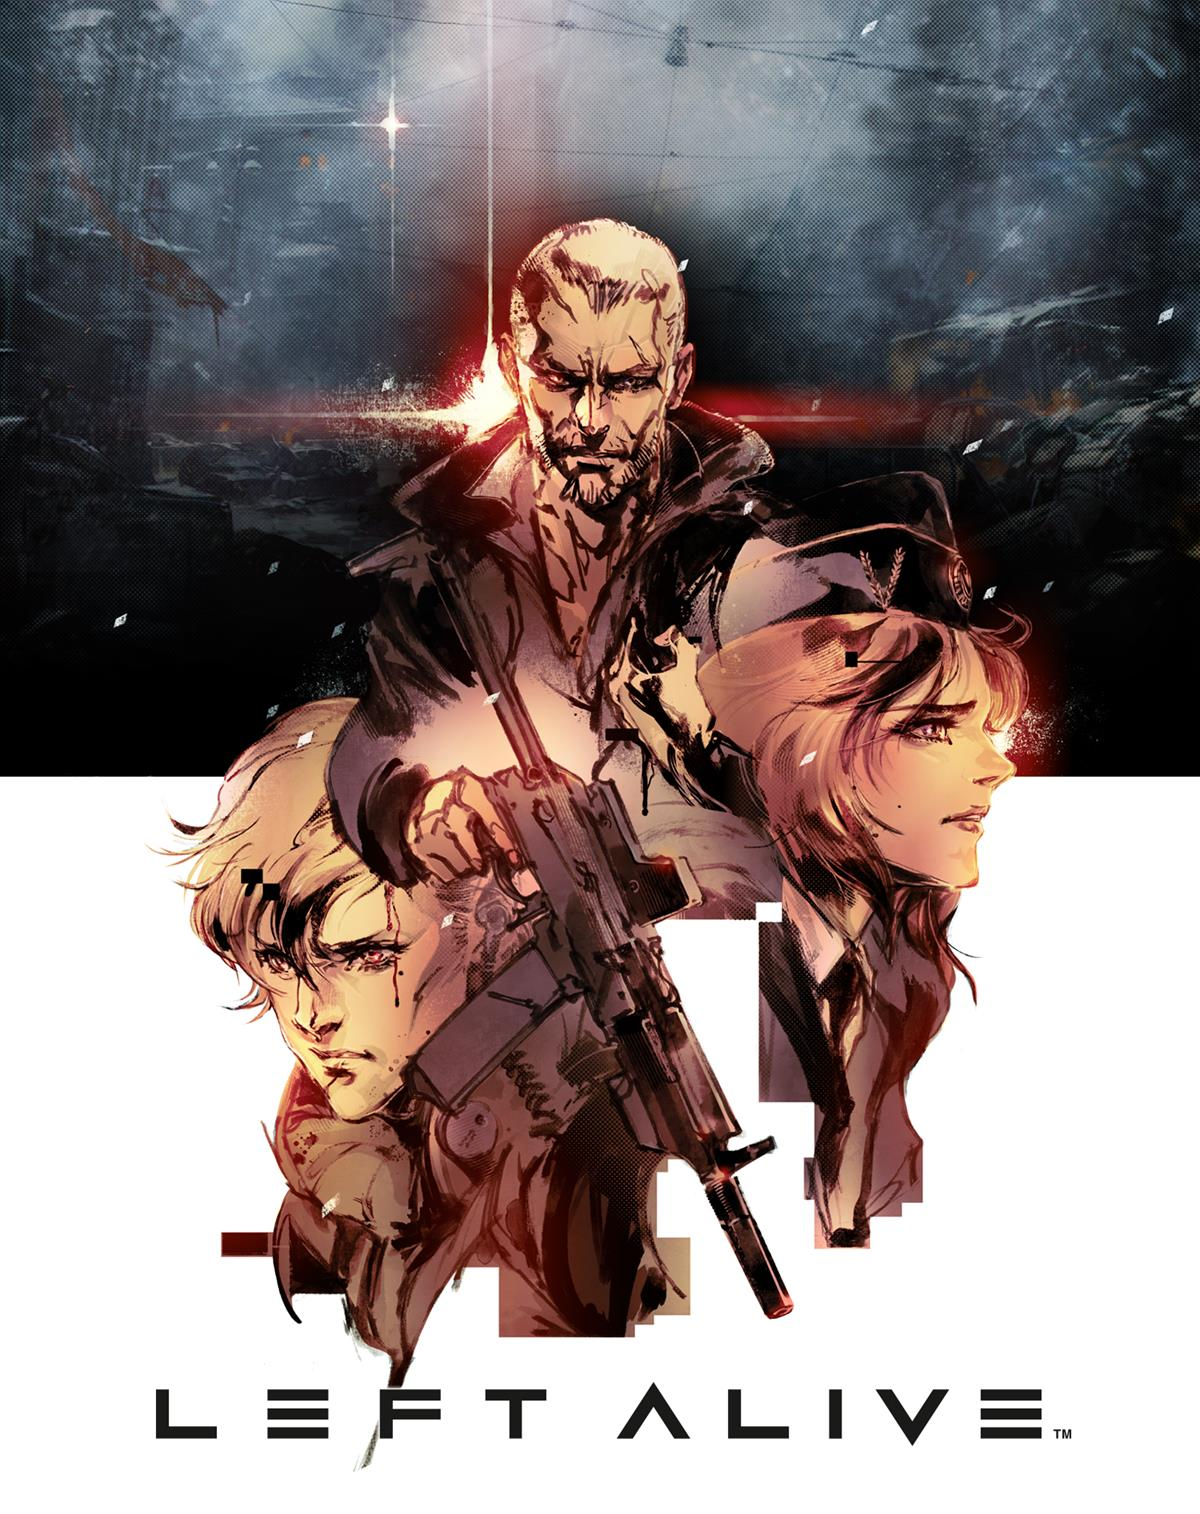 left_alive_main_art_reveal_1